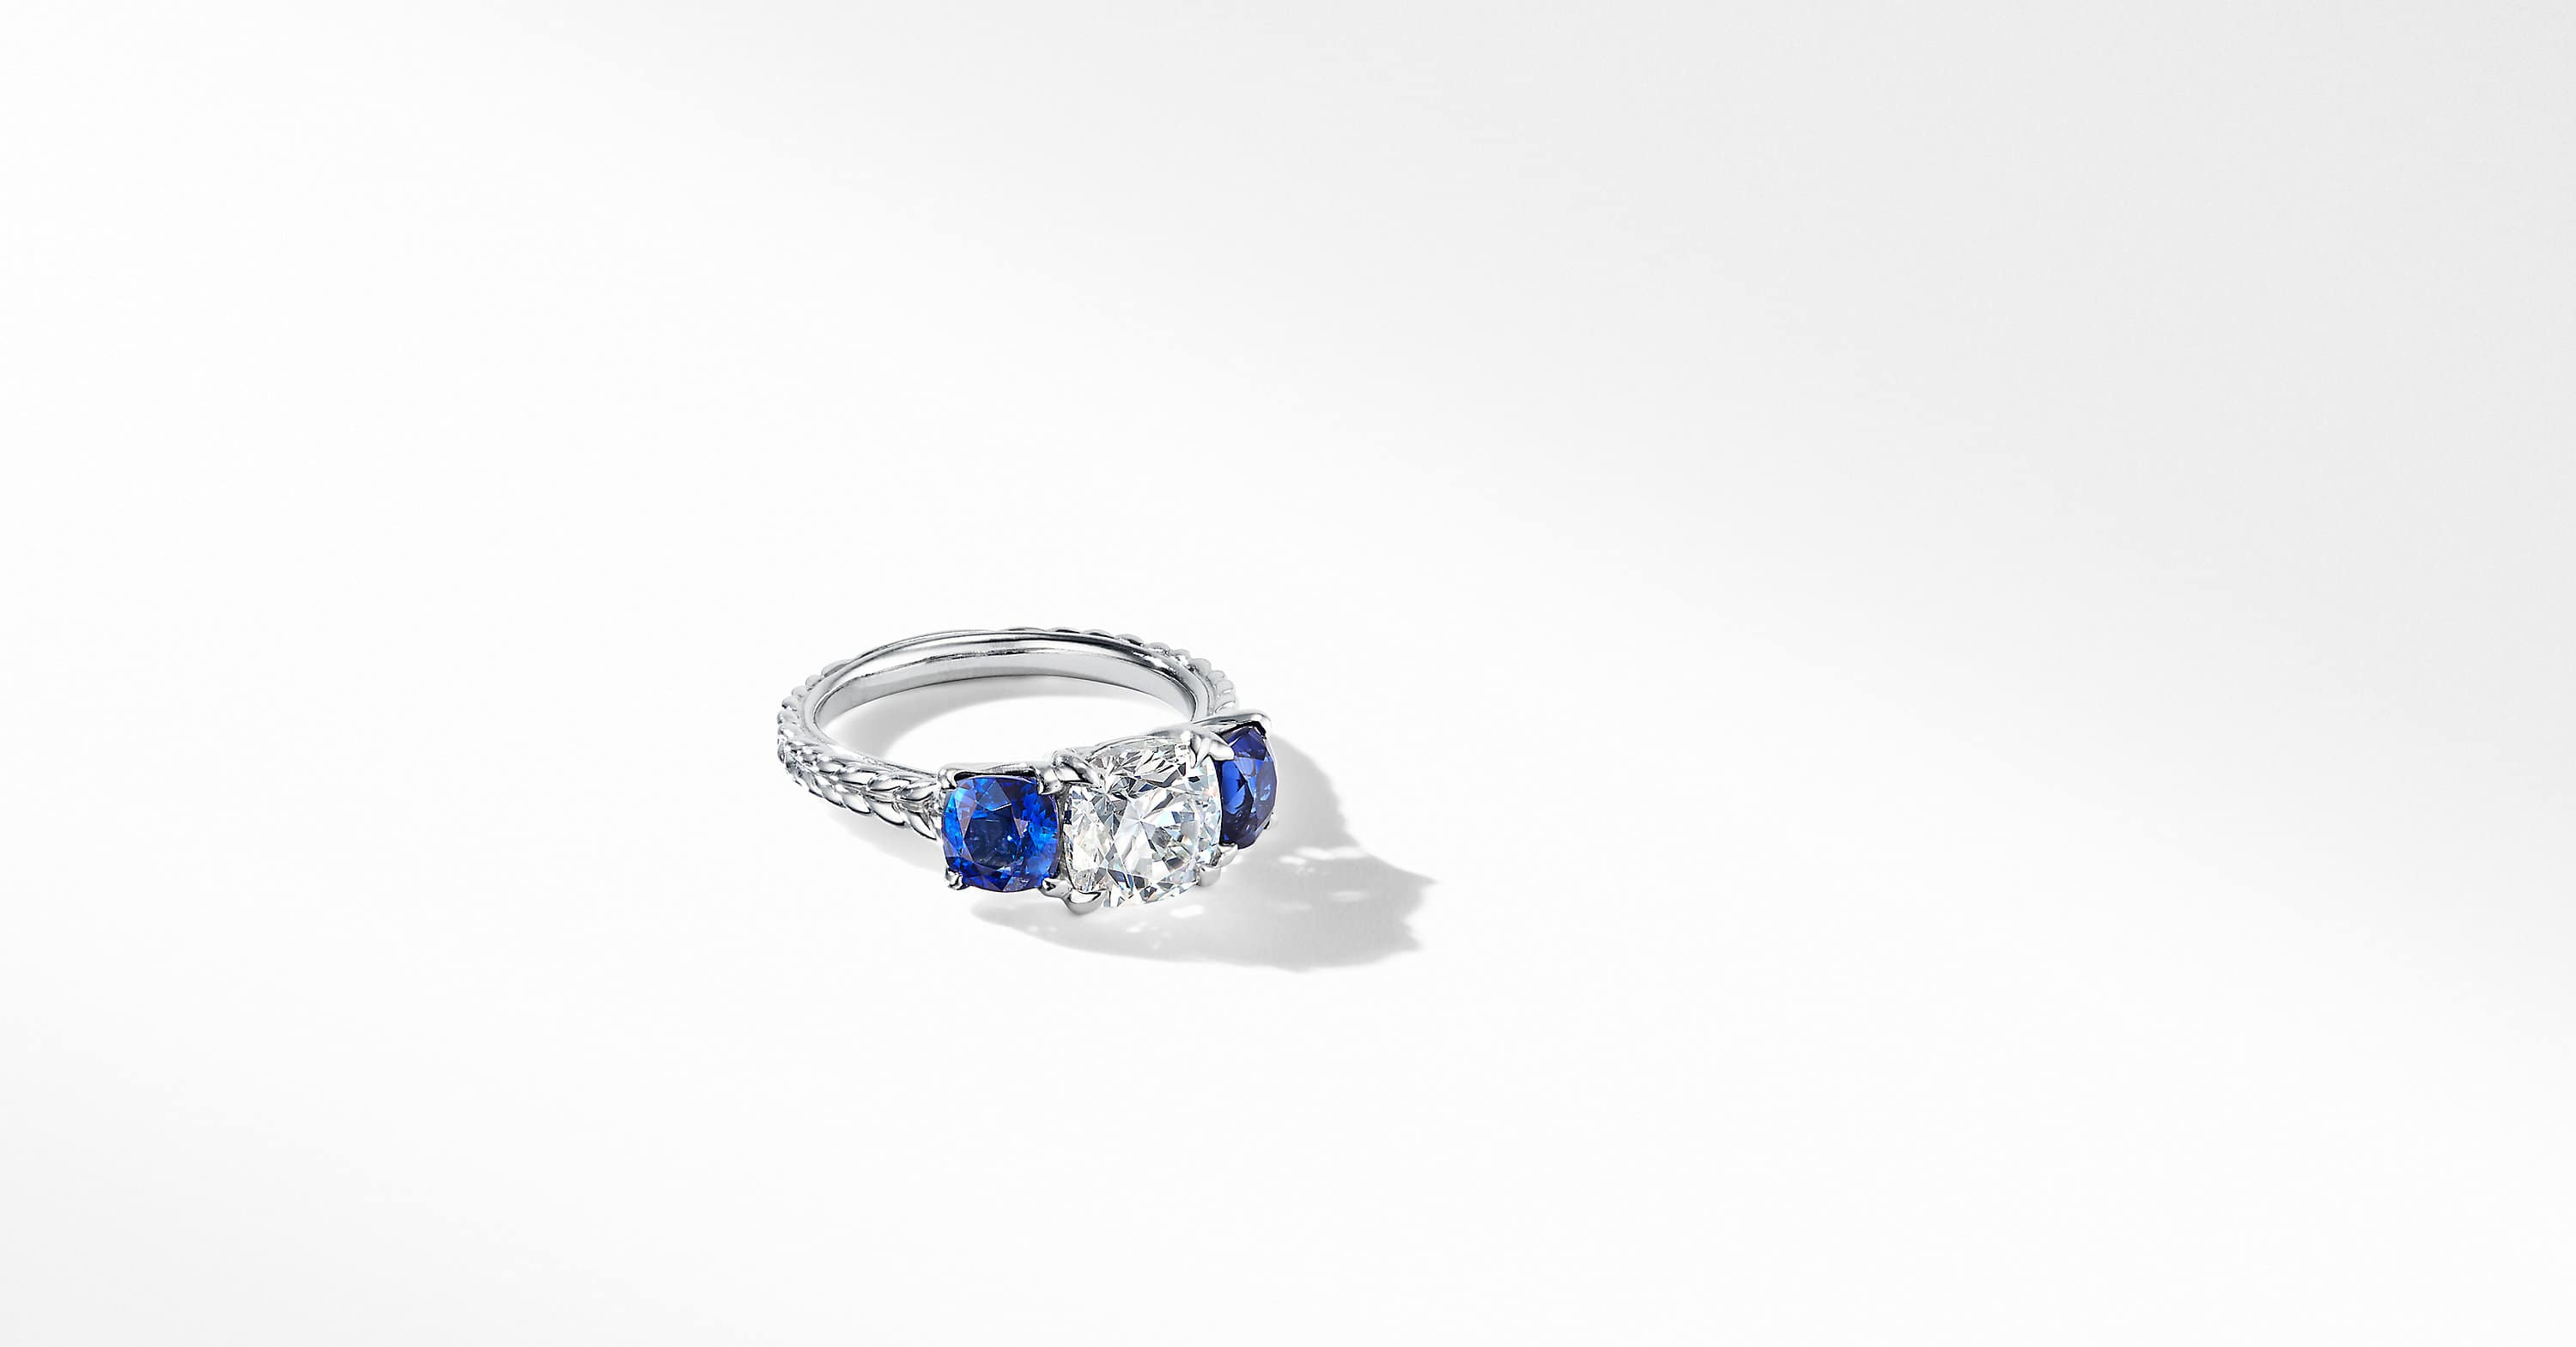 DY Three-Stone Engagement Ring in Platinum with Blue Sapphires, Cushion